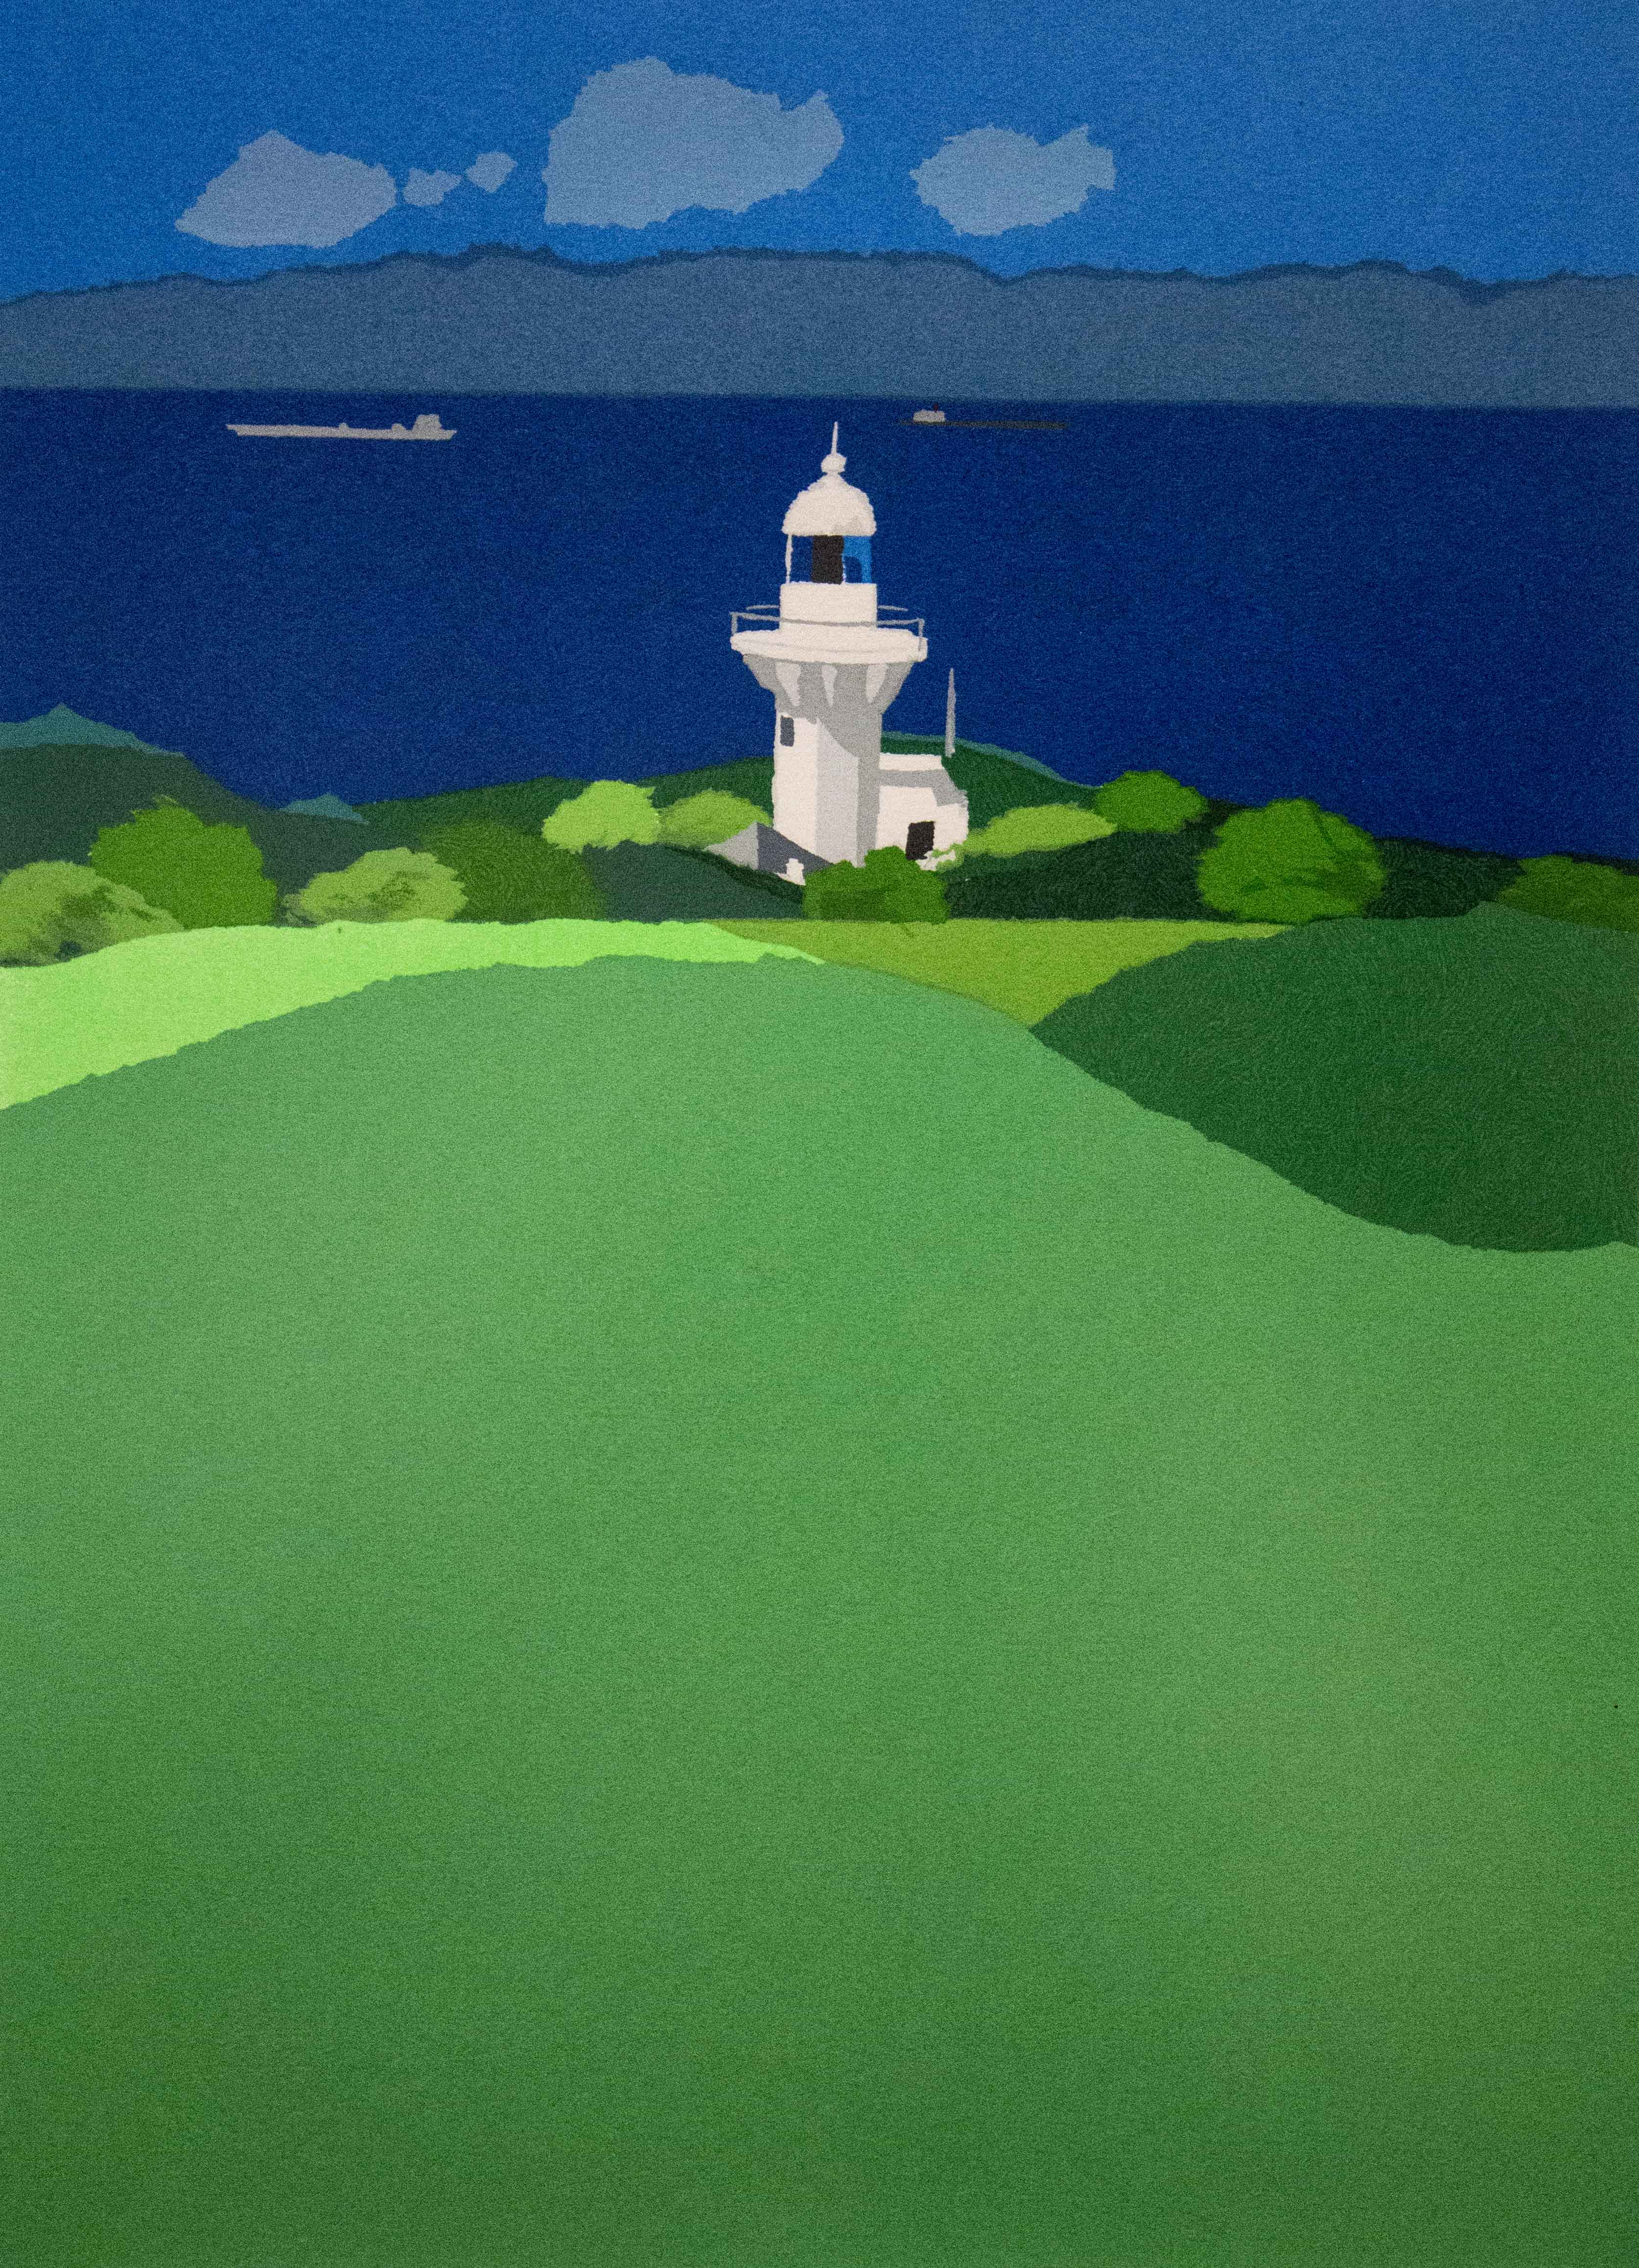 silk screen lighthouse image on a clear day